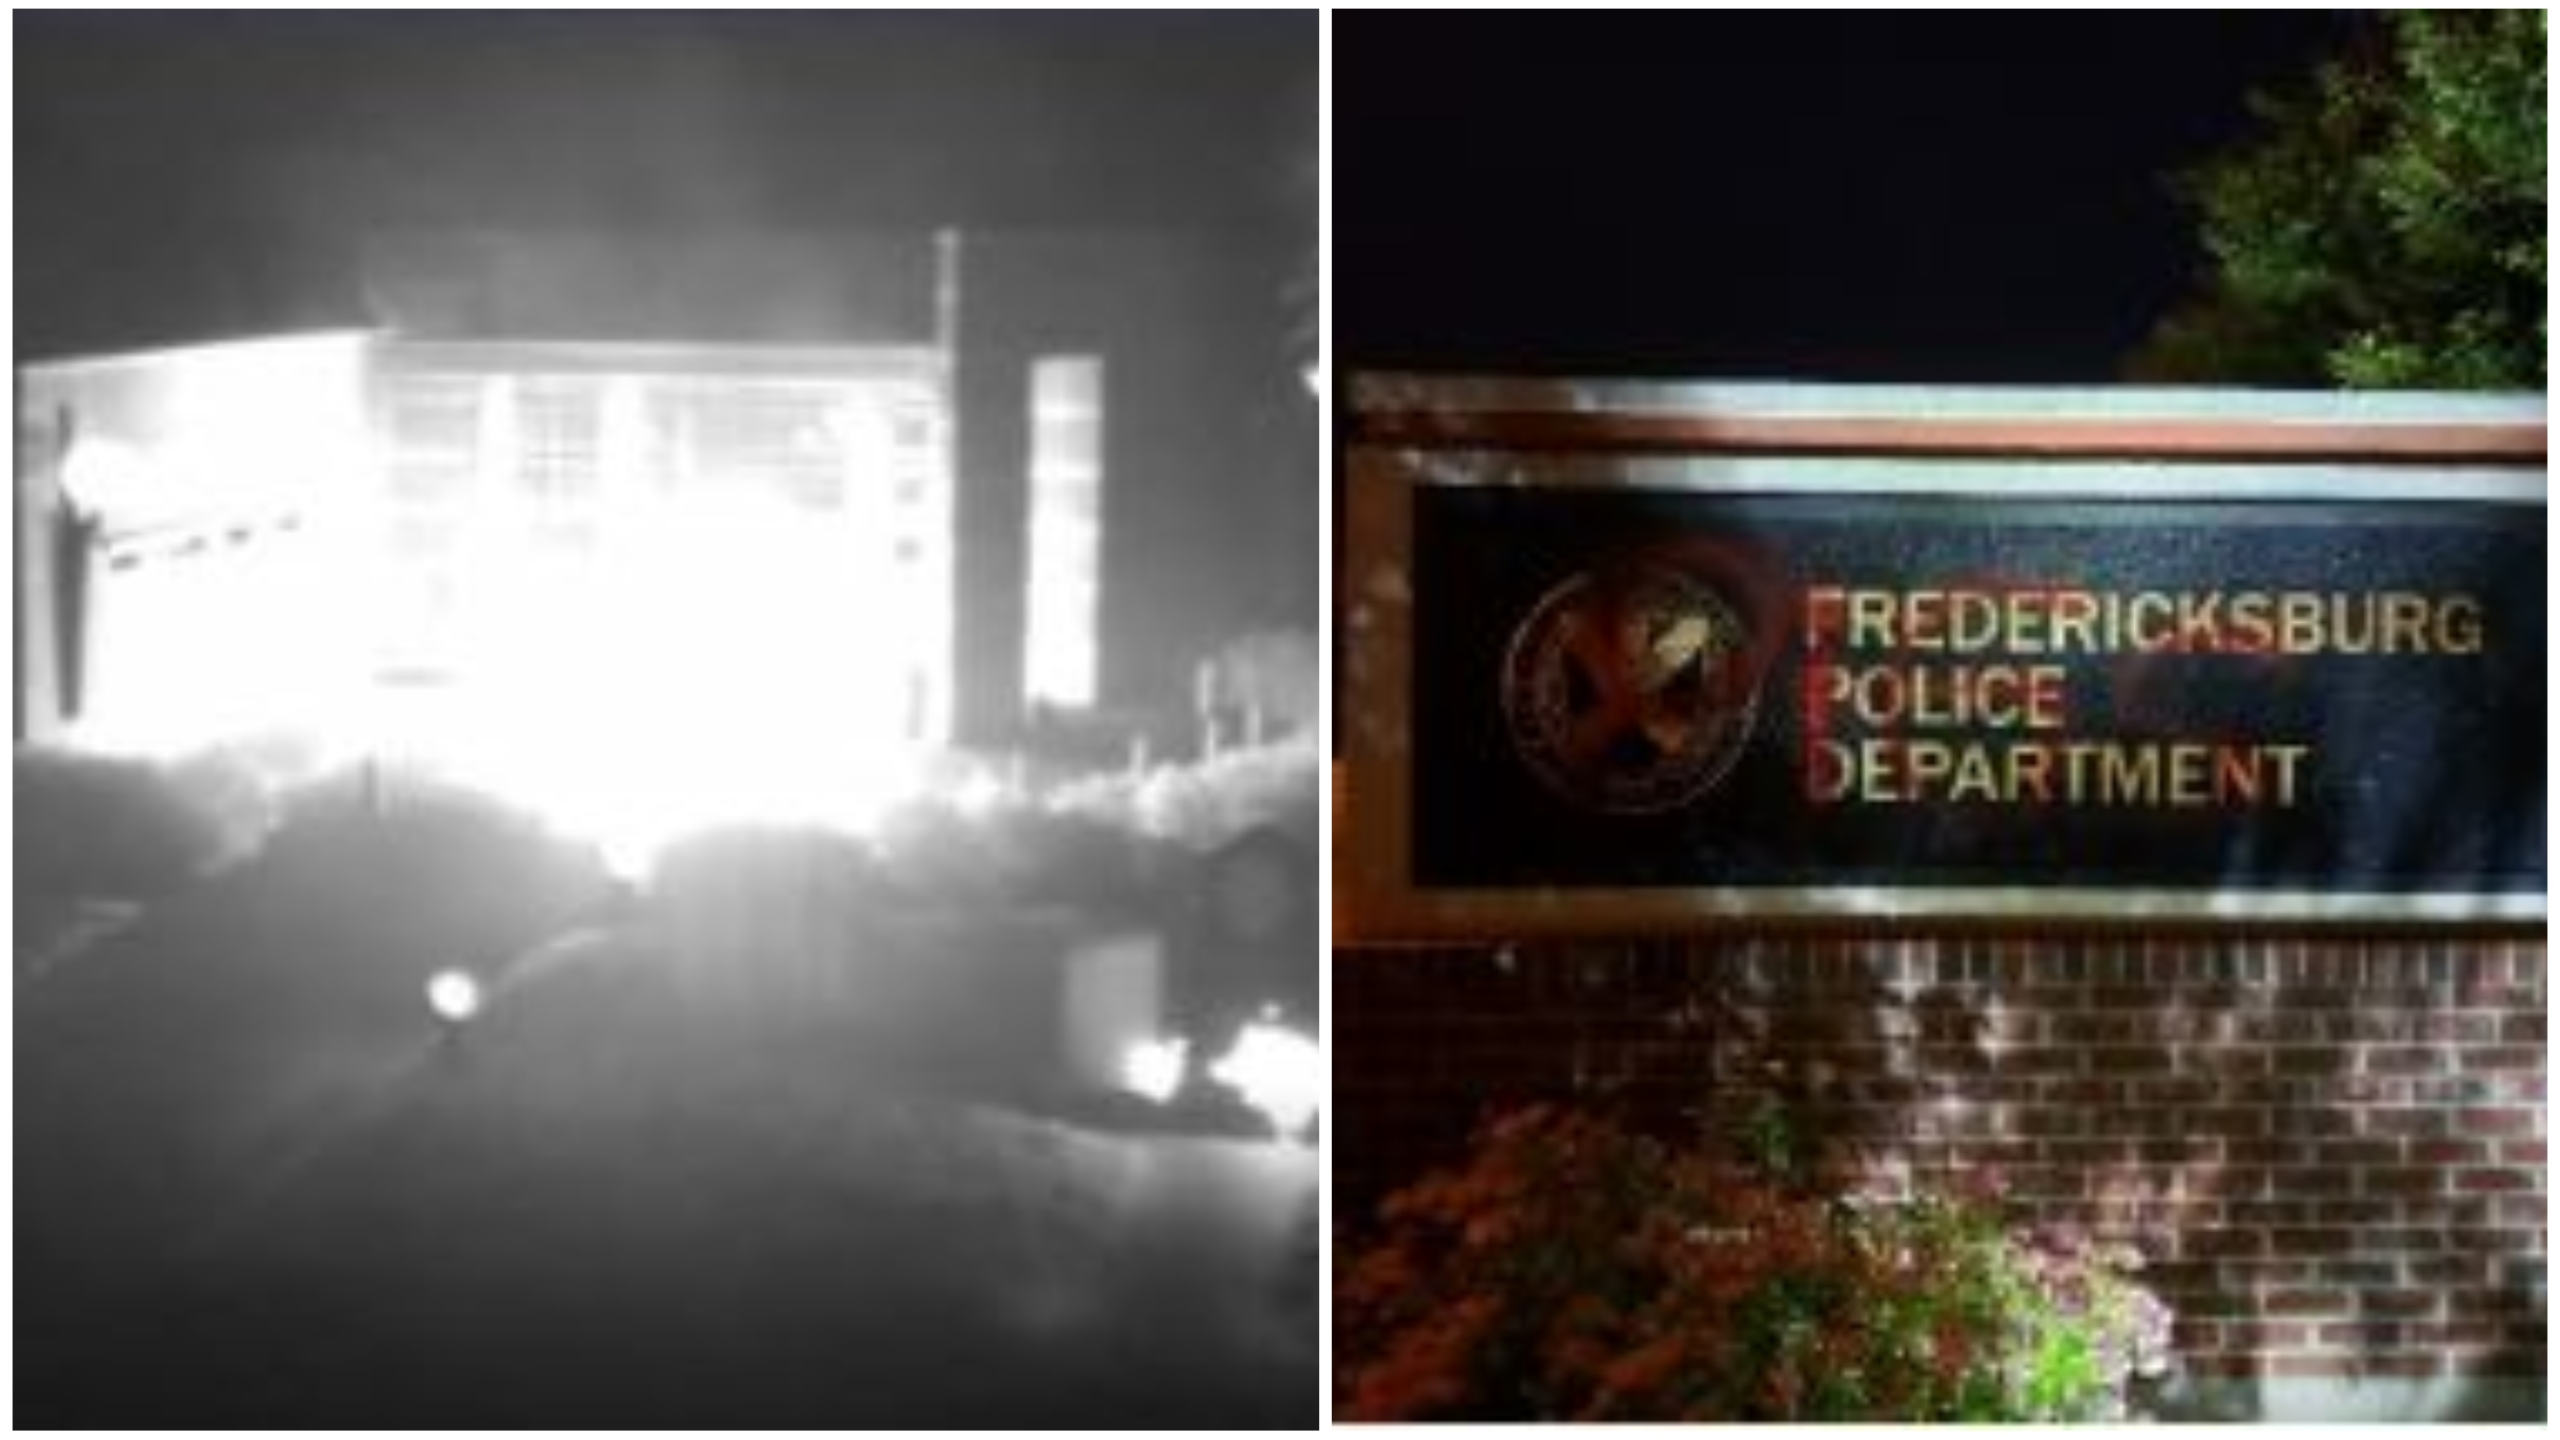 Fredericksburg_PD_HQ_vandalized_arson